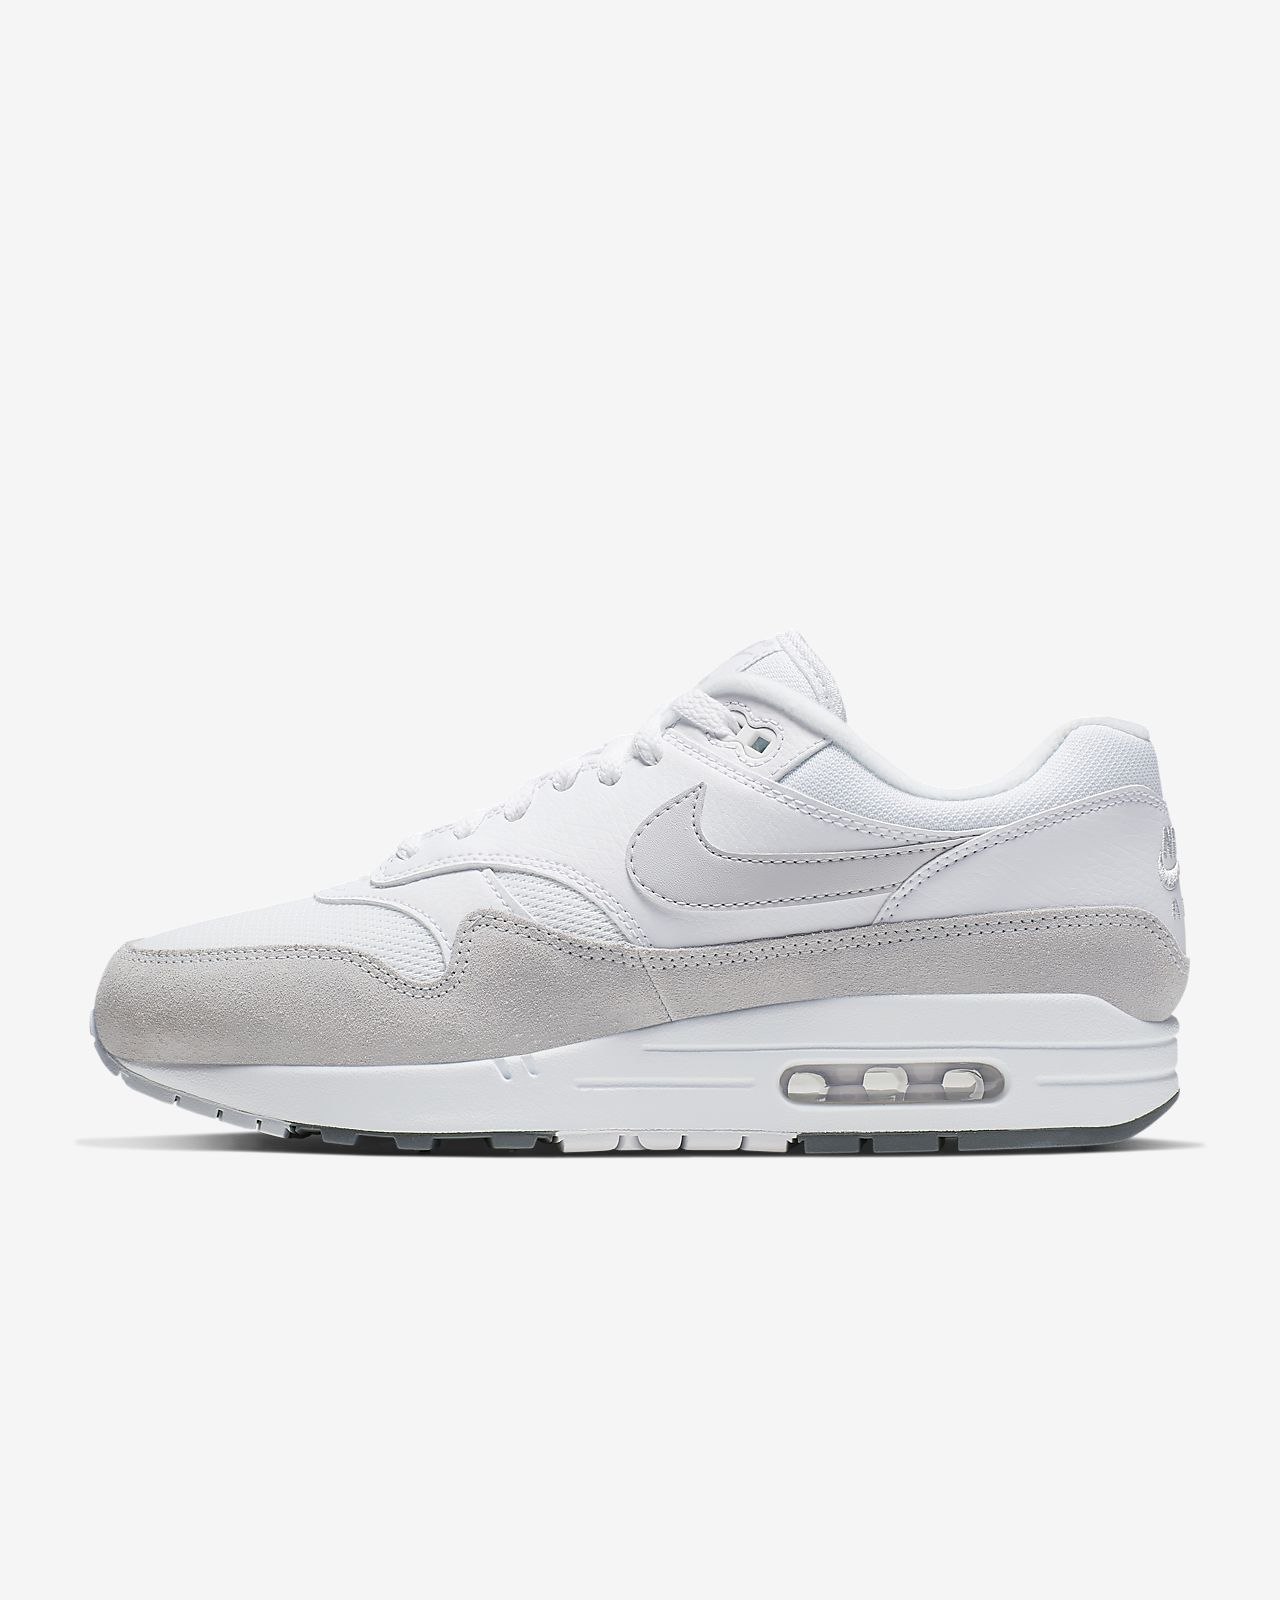 0438e6e4cb Nike Air Max 1 Men's Shoe. Nike.com